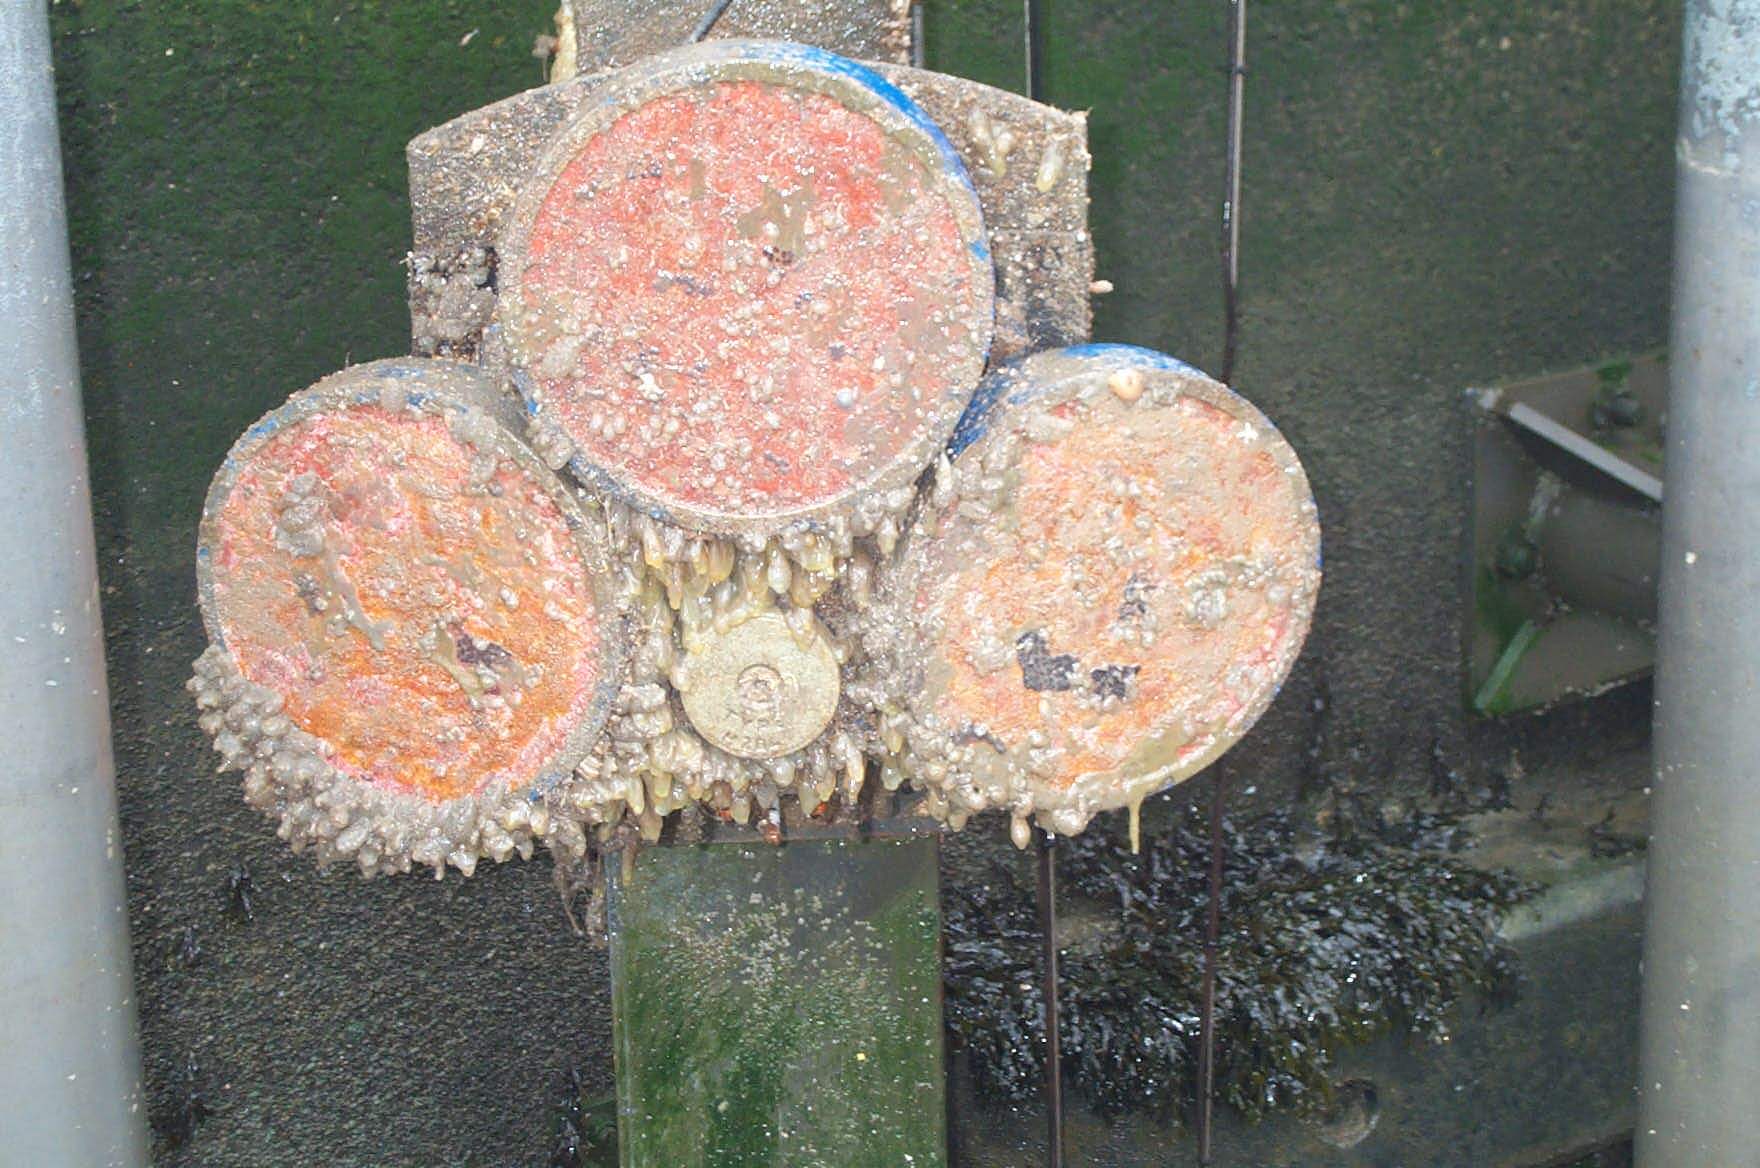 Biofouling examples